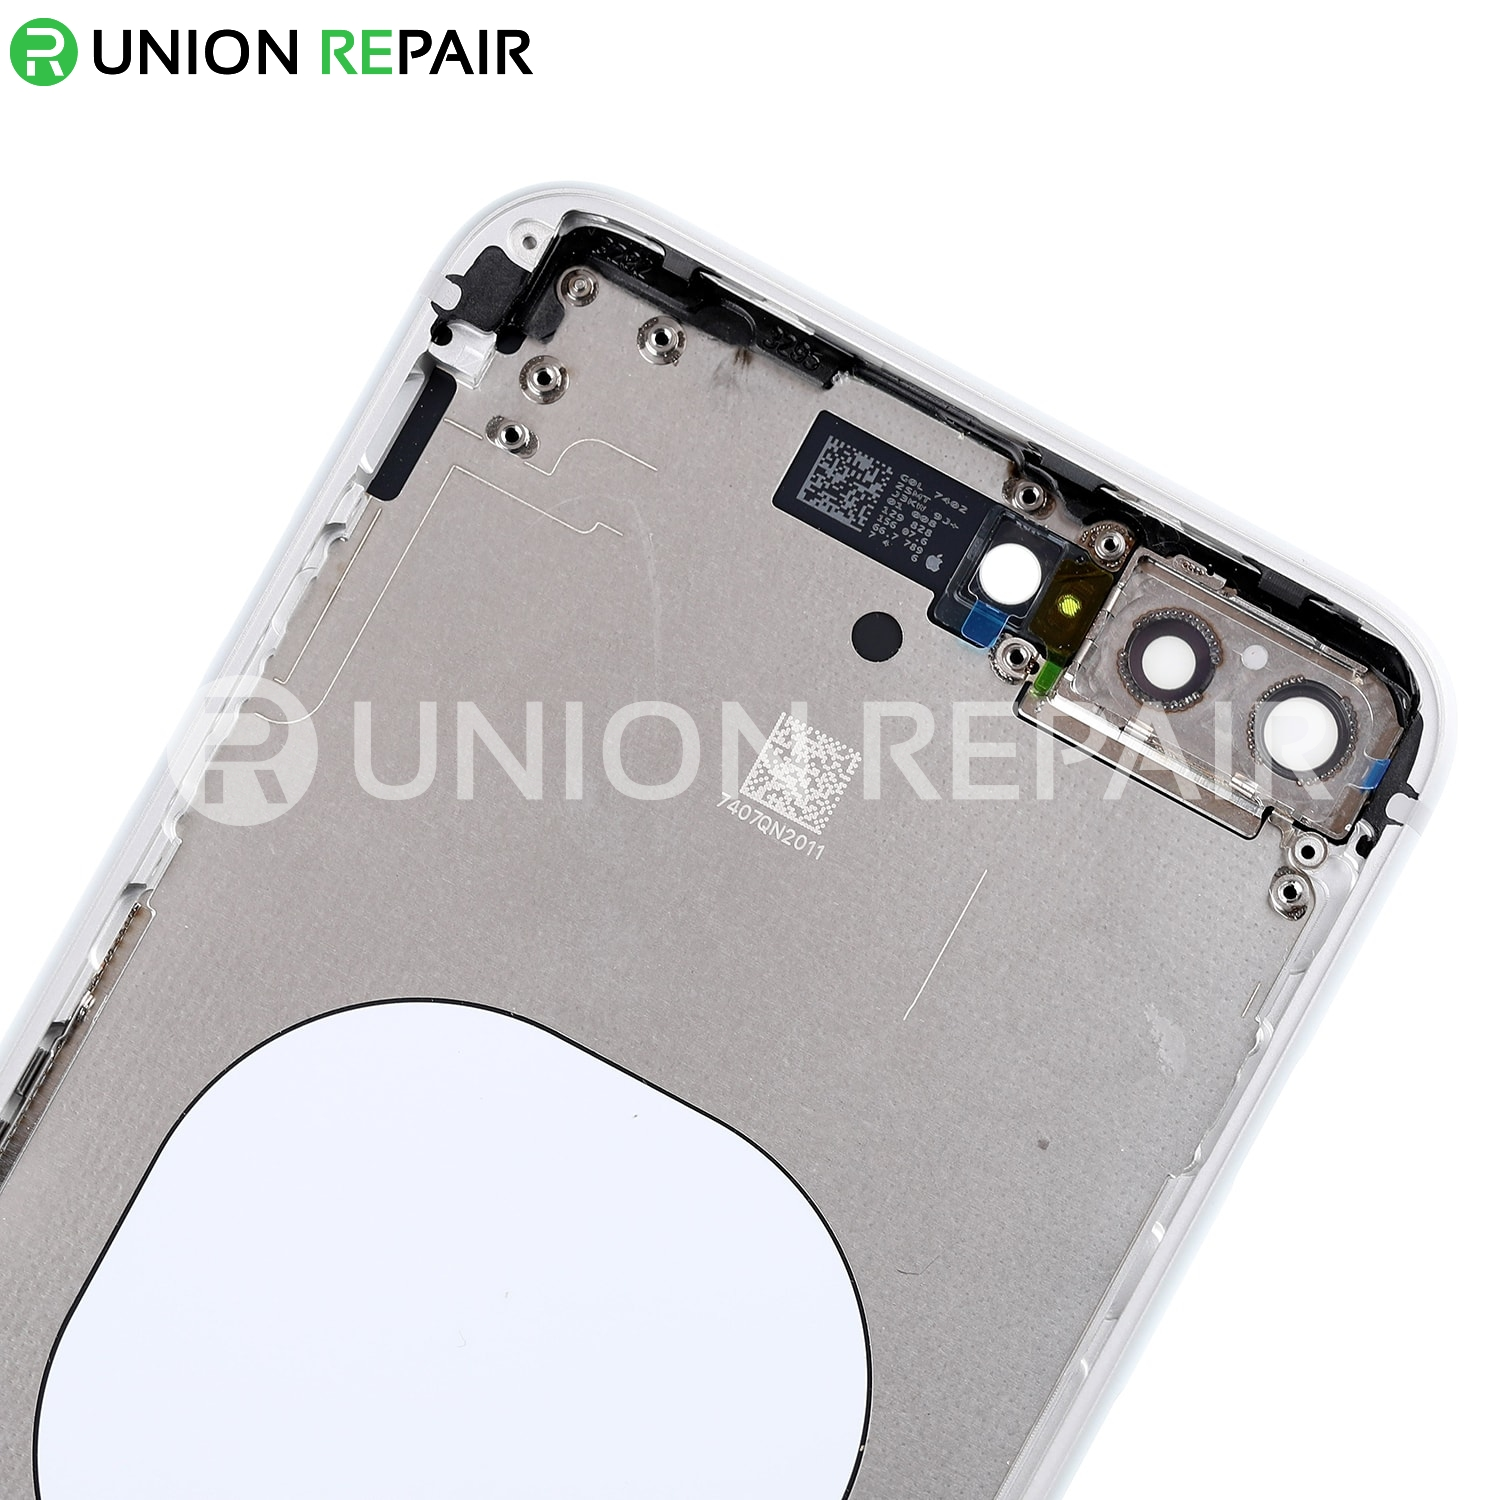 Replacement for iPhone 8 Plus Back Cover with Frame Assembly - Silver